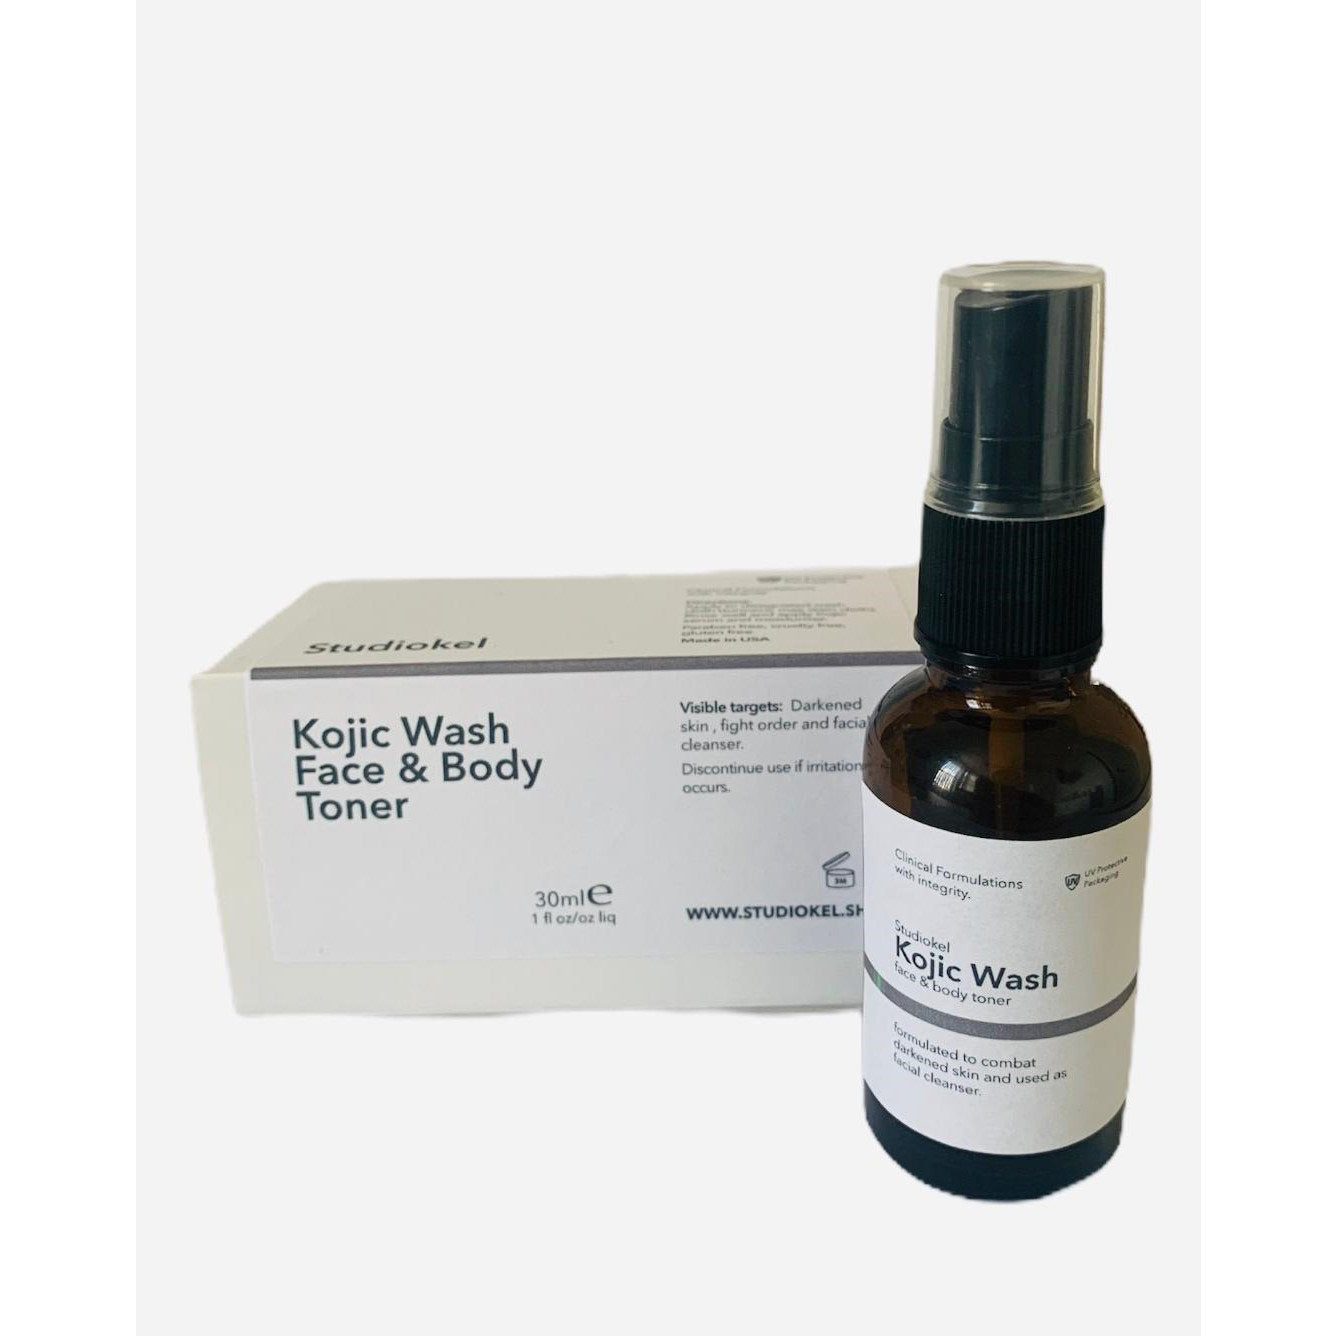 Kojic Wash Face and Body Toner